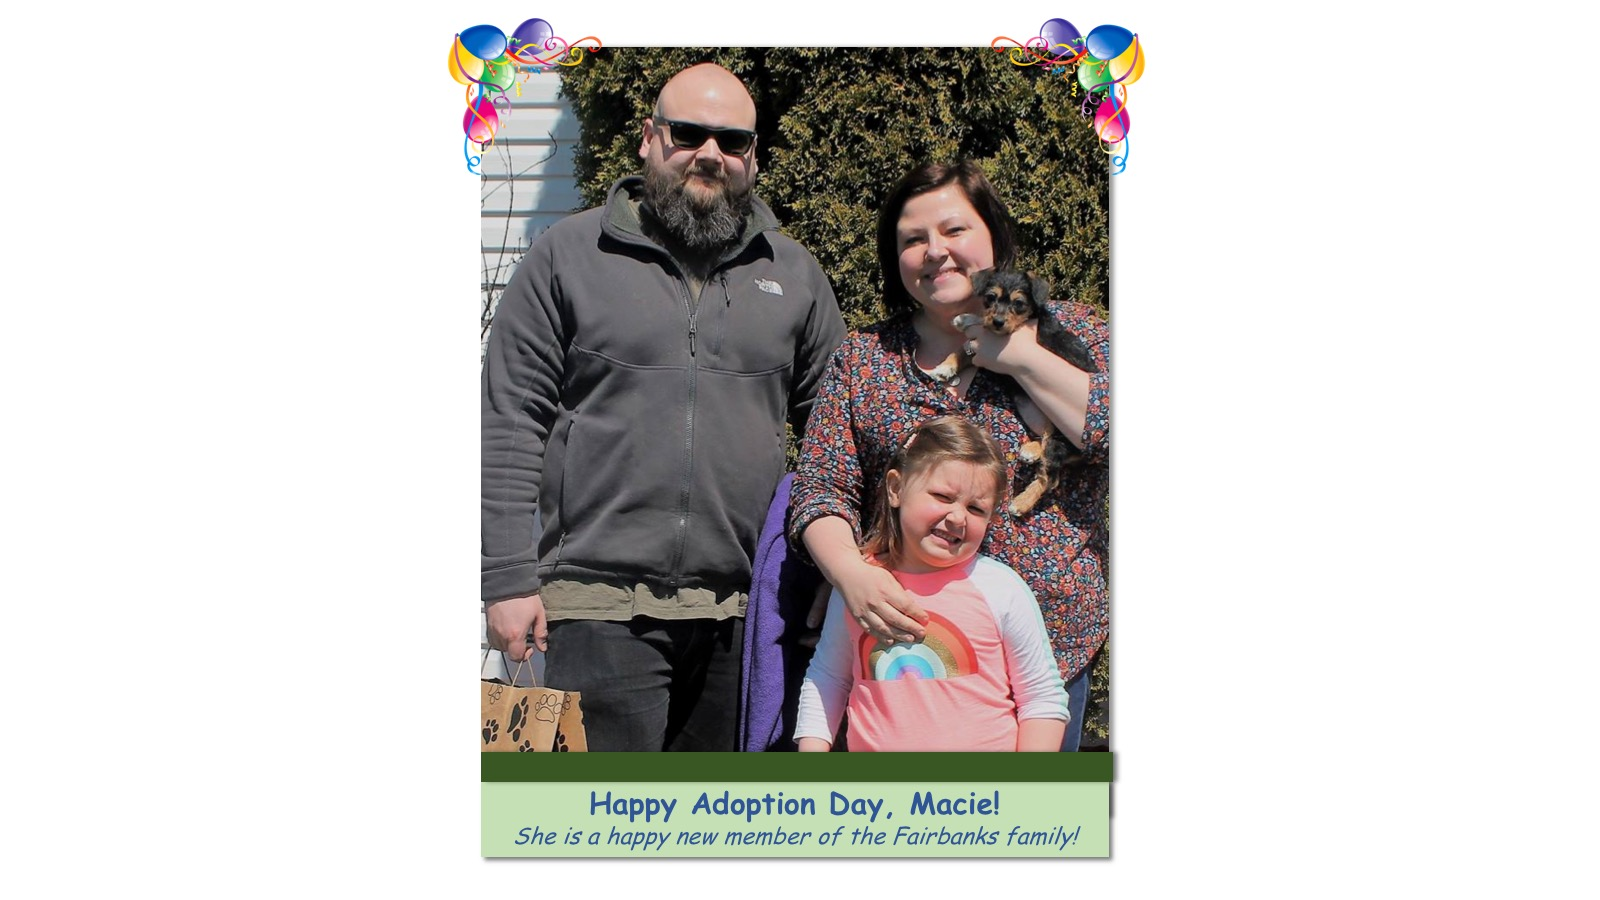 Macie_Adoption_Photo_2018.jpg